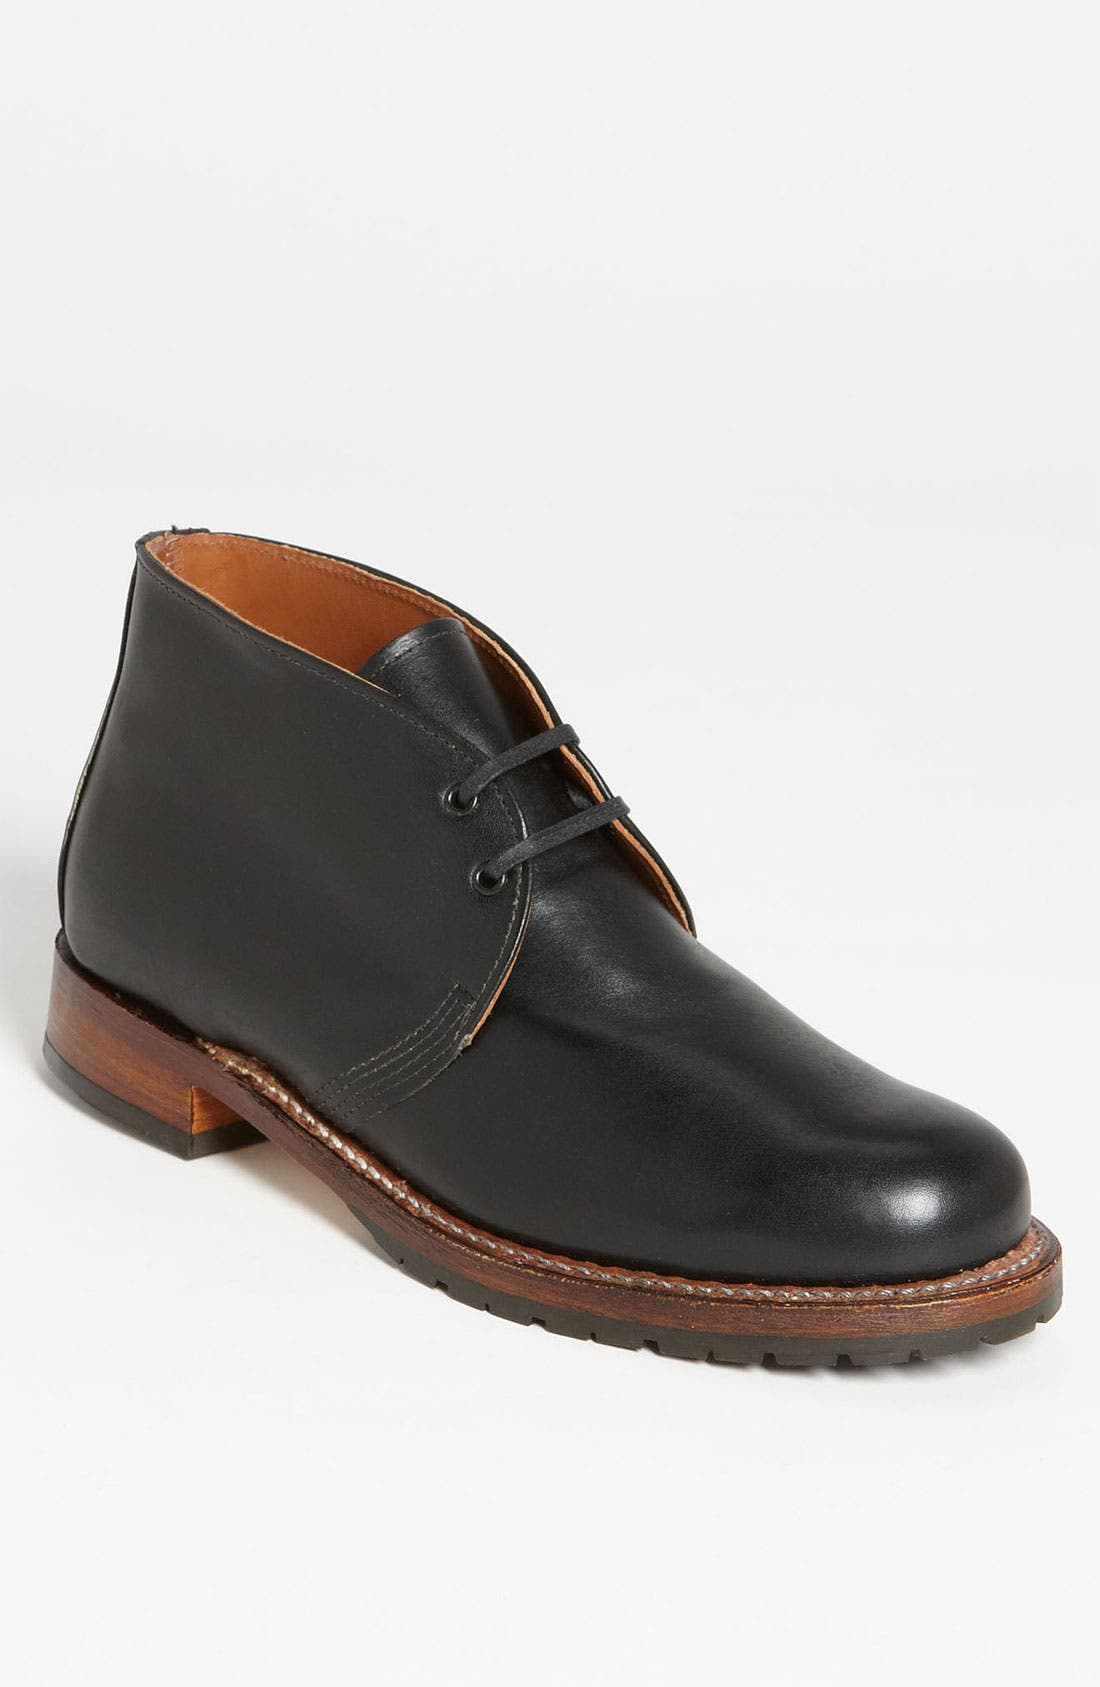 'Beckman' Chukka Boot,                             Main thumbnail 1, color,                             001